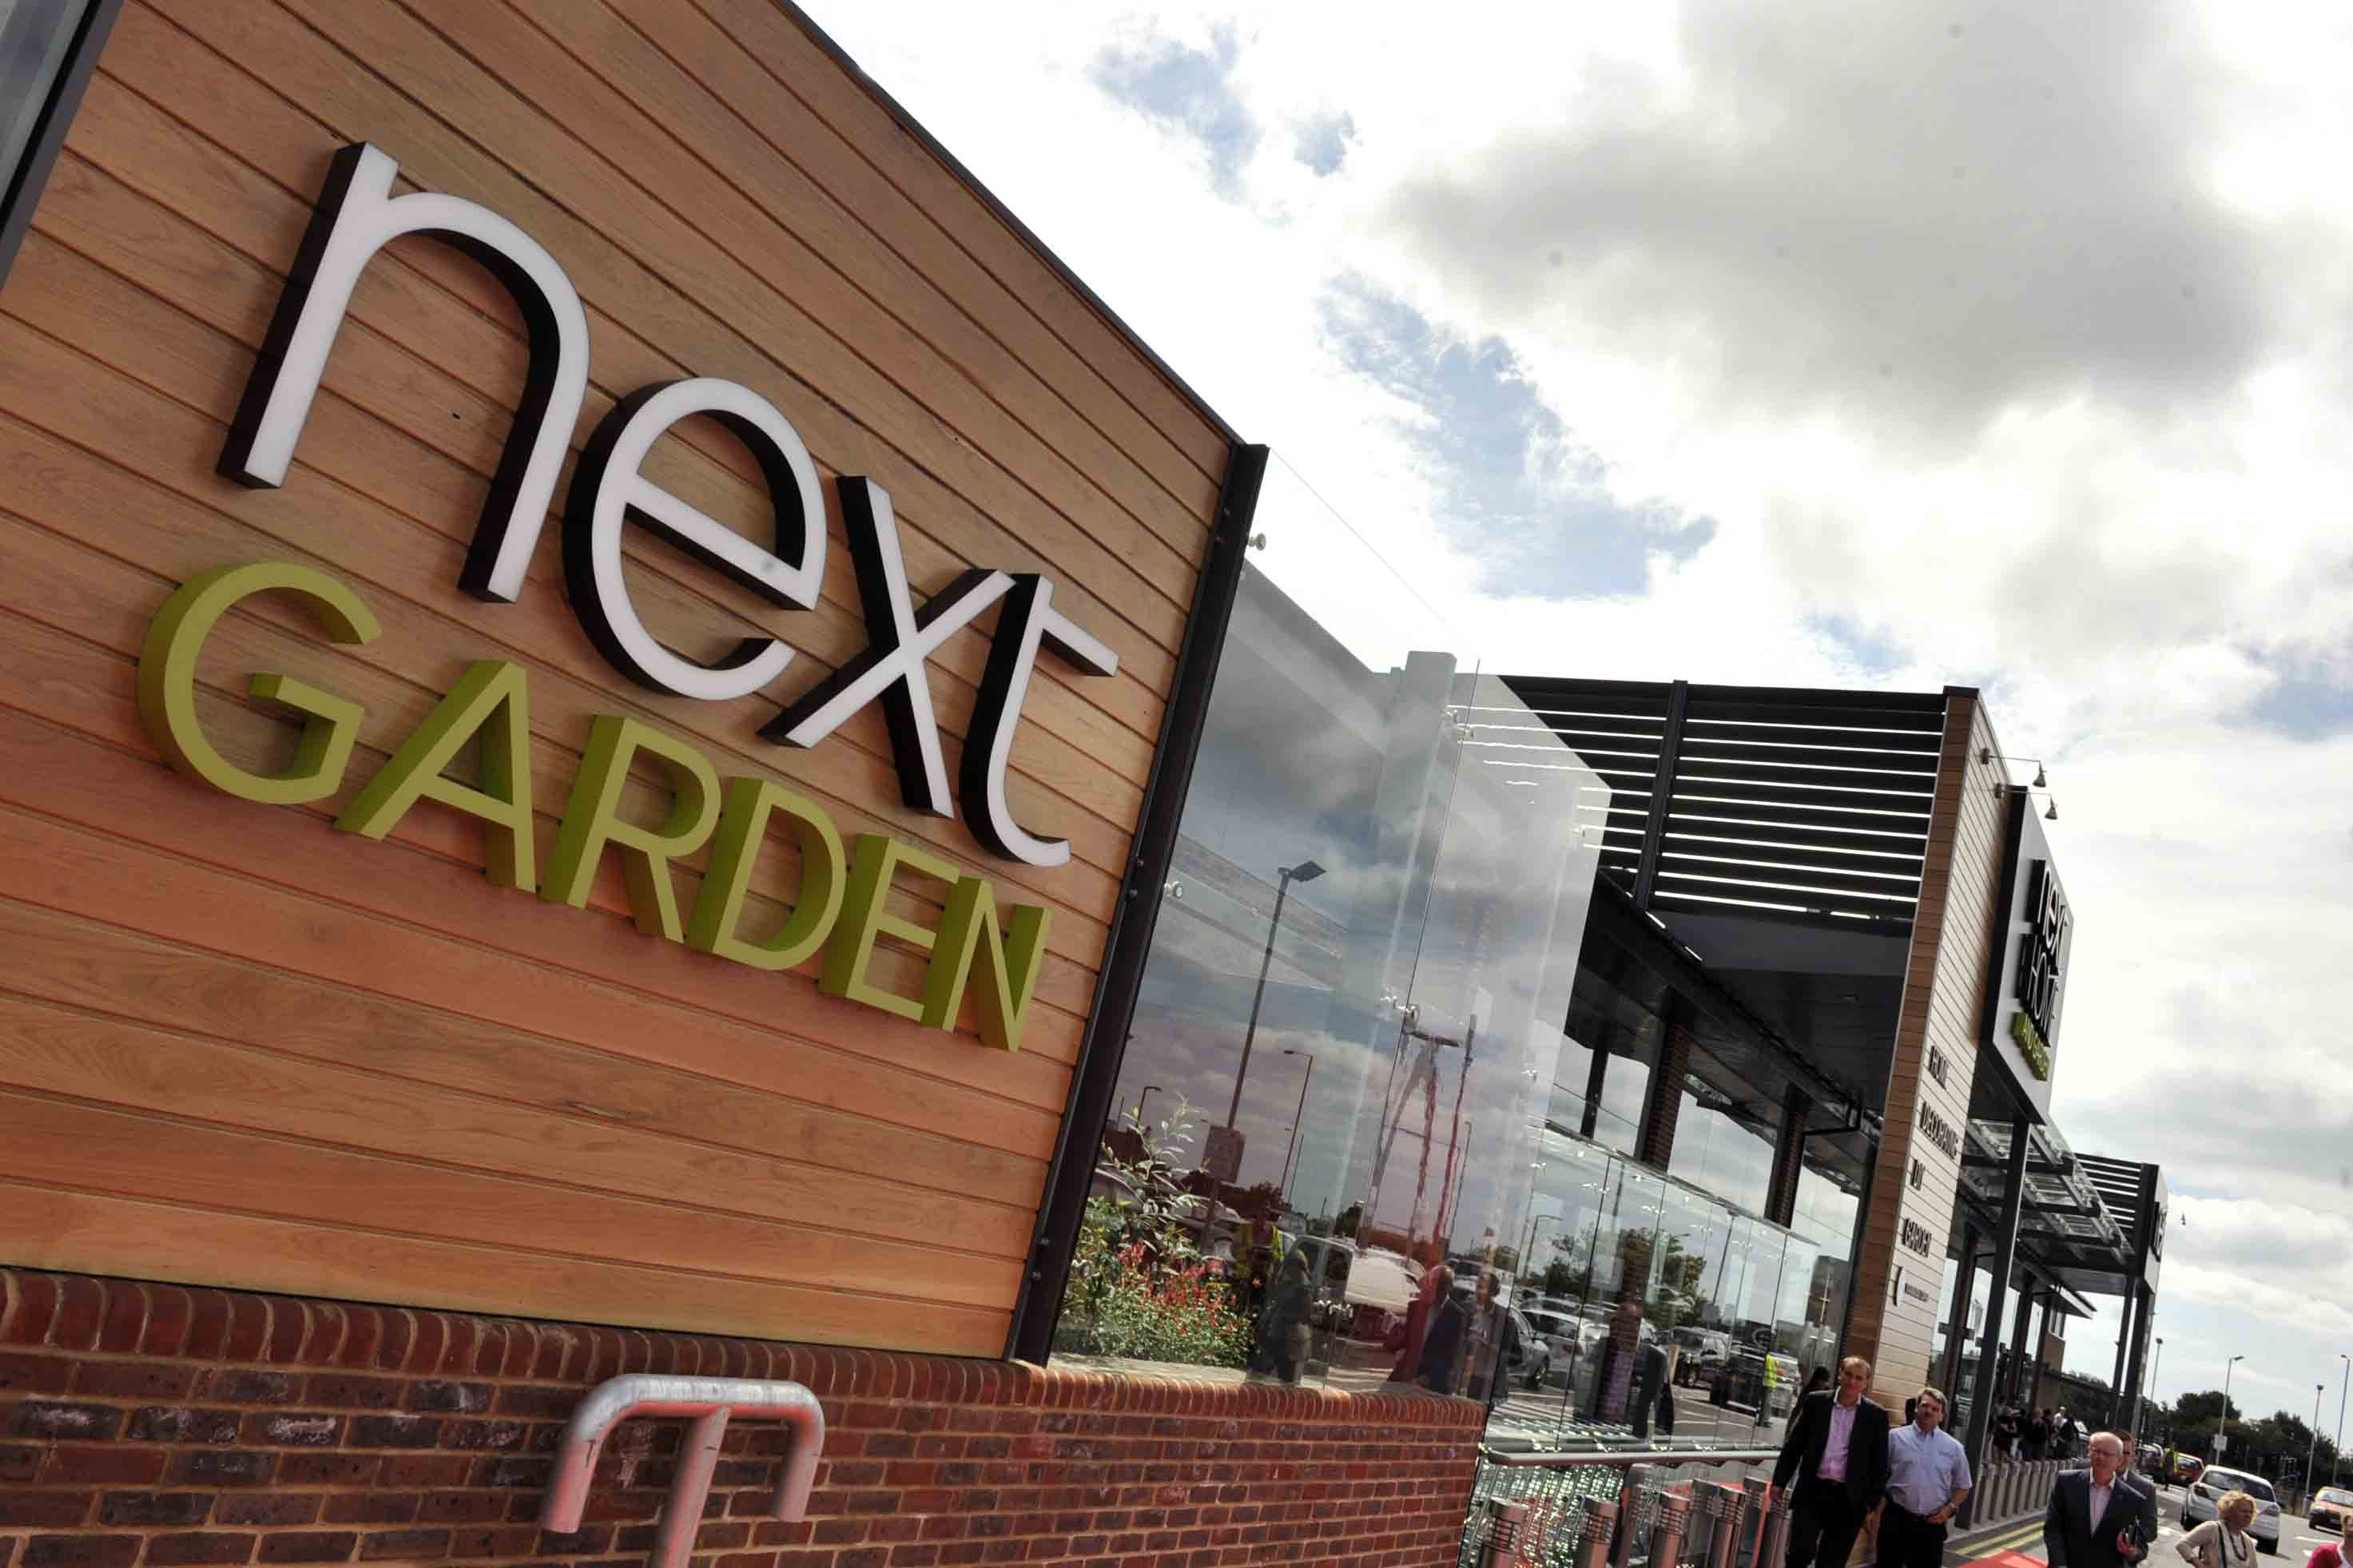 Fashion Chain Next Opens First Garden Centre Amateur